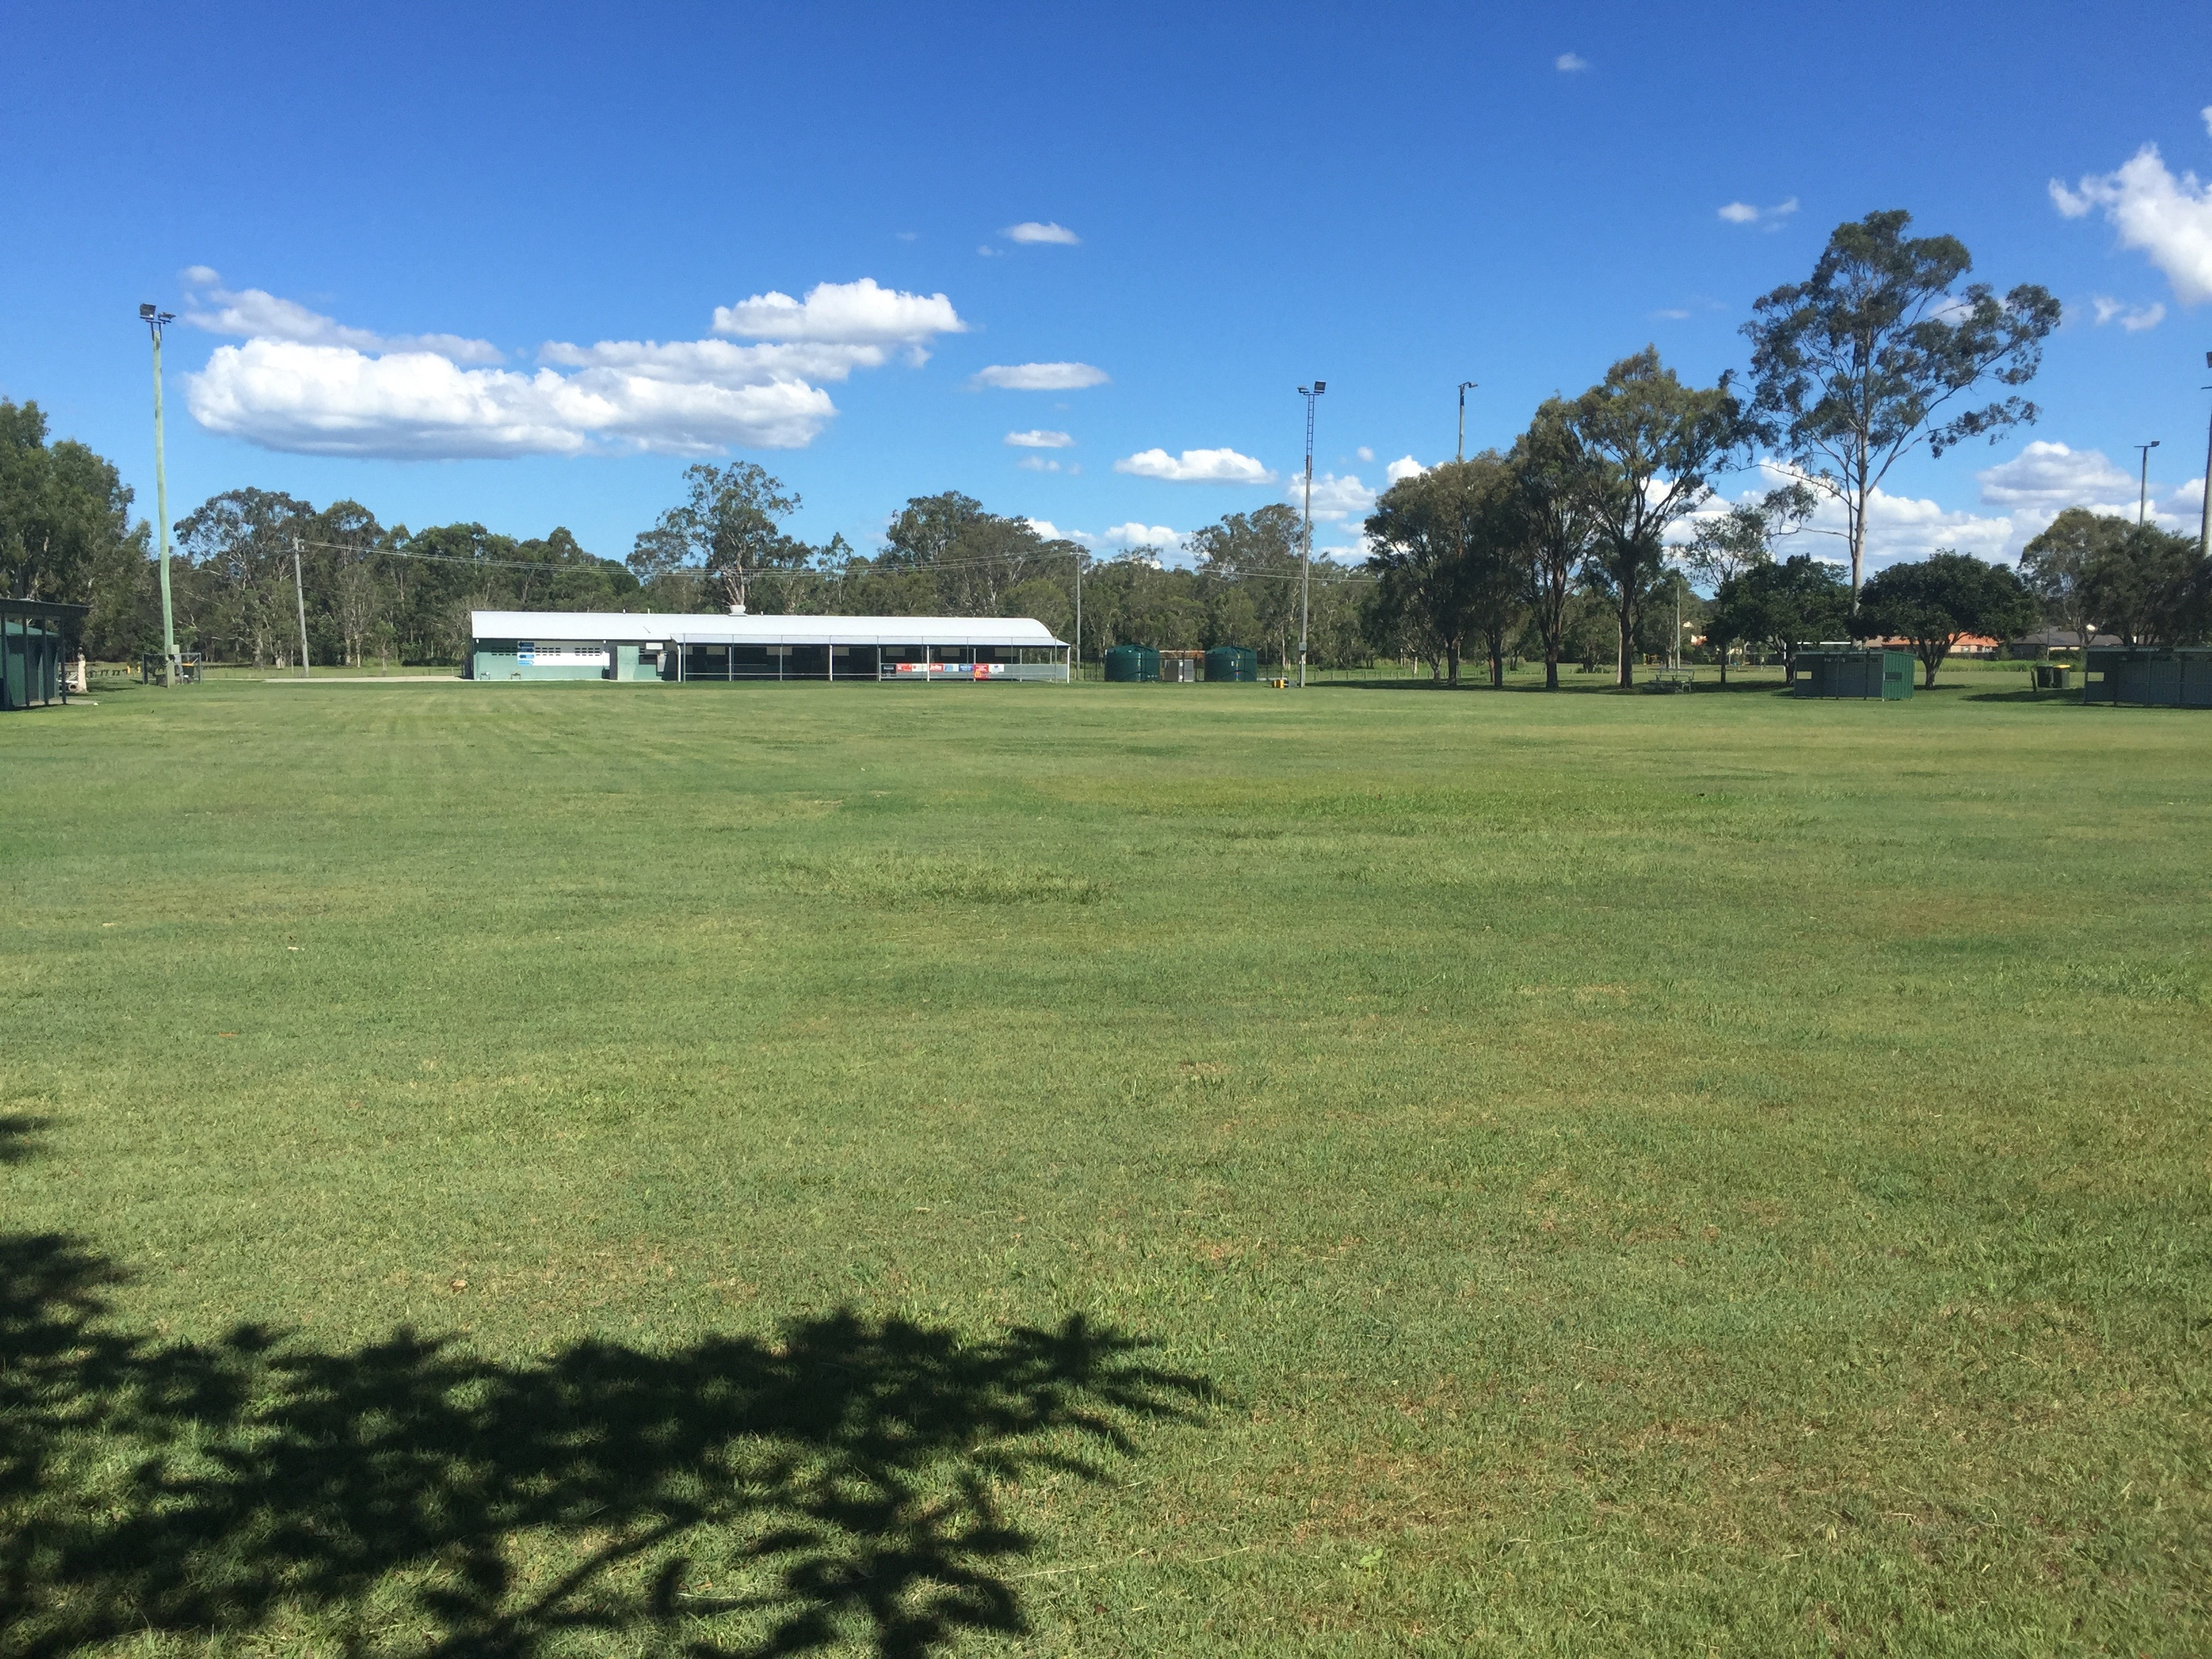 Another beautiful green lawn expanse at Stanley Day Park, Bald Hills © GreenSocks